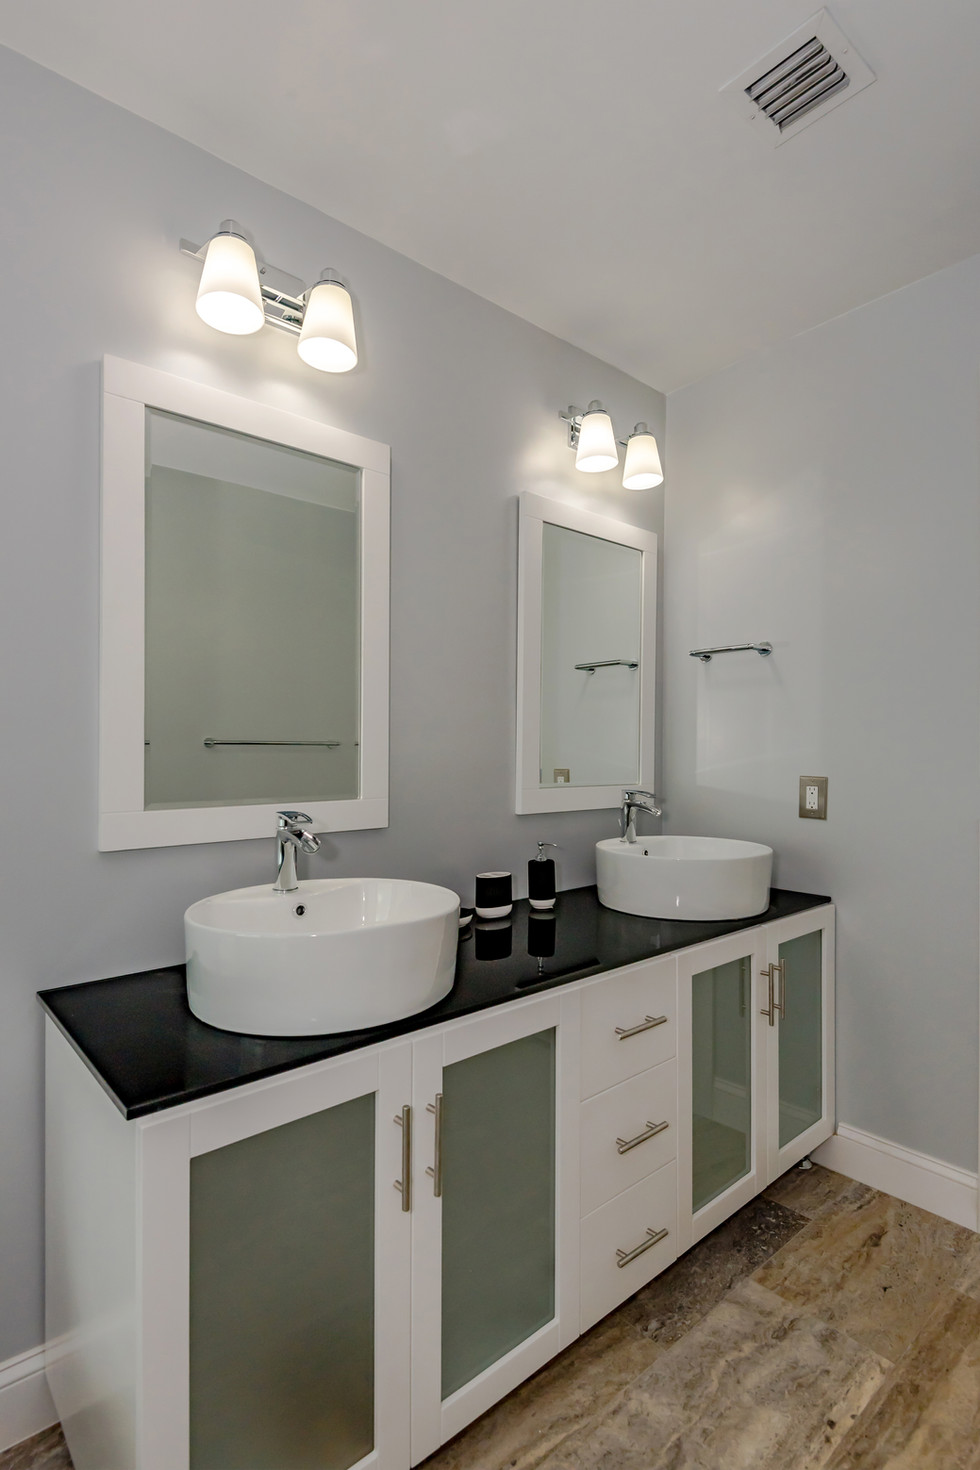 Custom Master Bathroom Remodel with All-Wood Double Vanity With Above Counter Basins